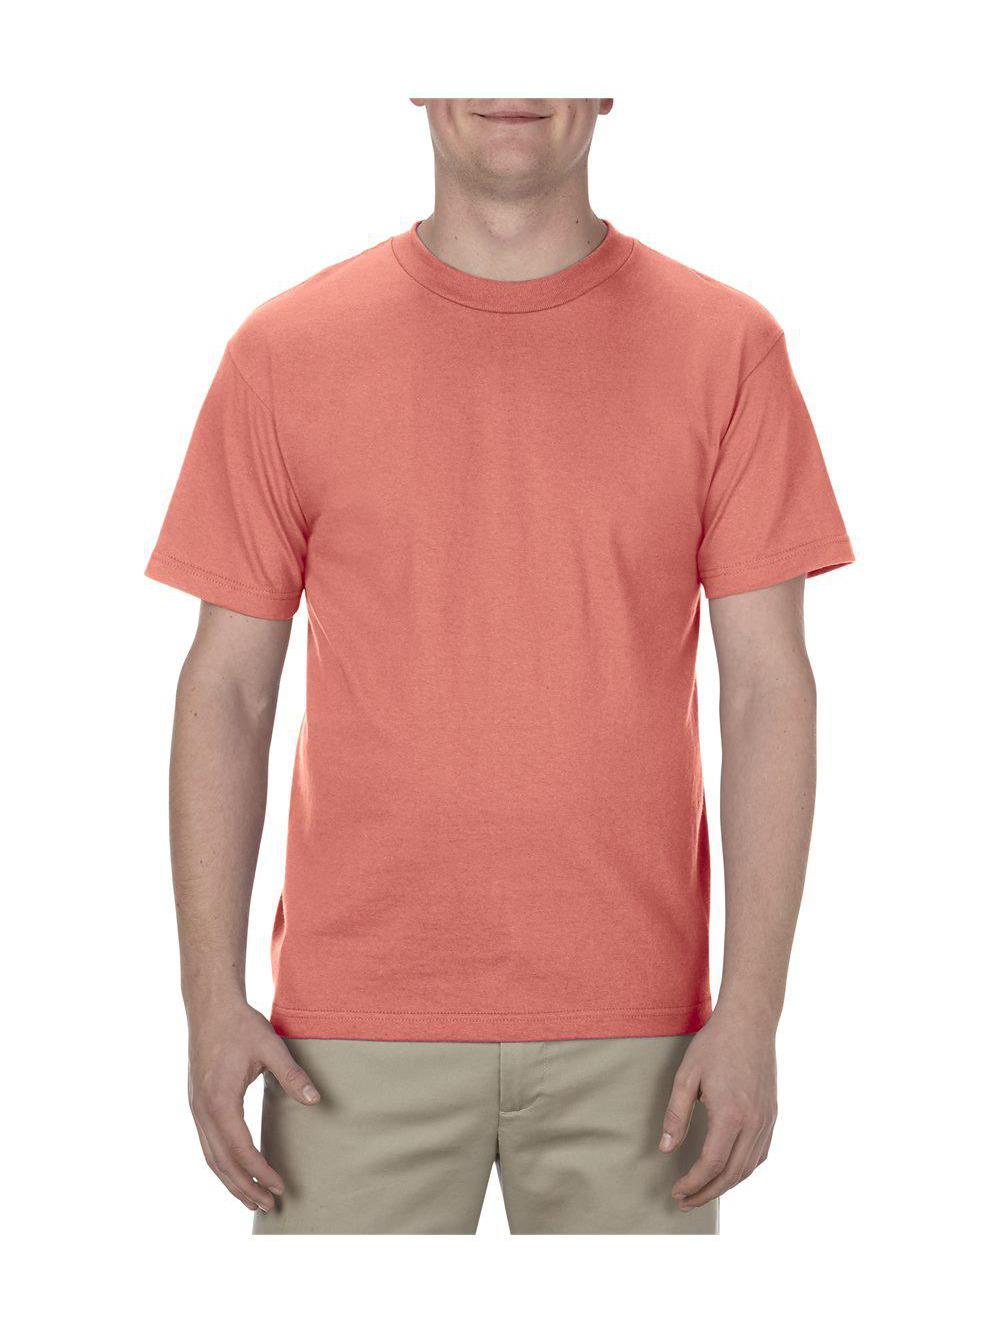 ALSTYLE-Classic-T-Shirt-1301 thumbnail 33